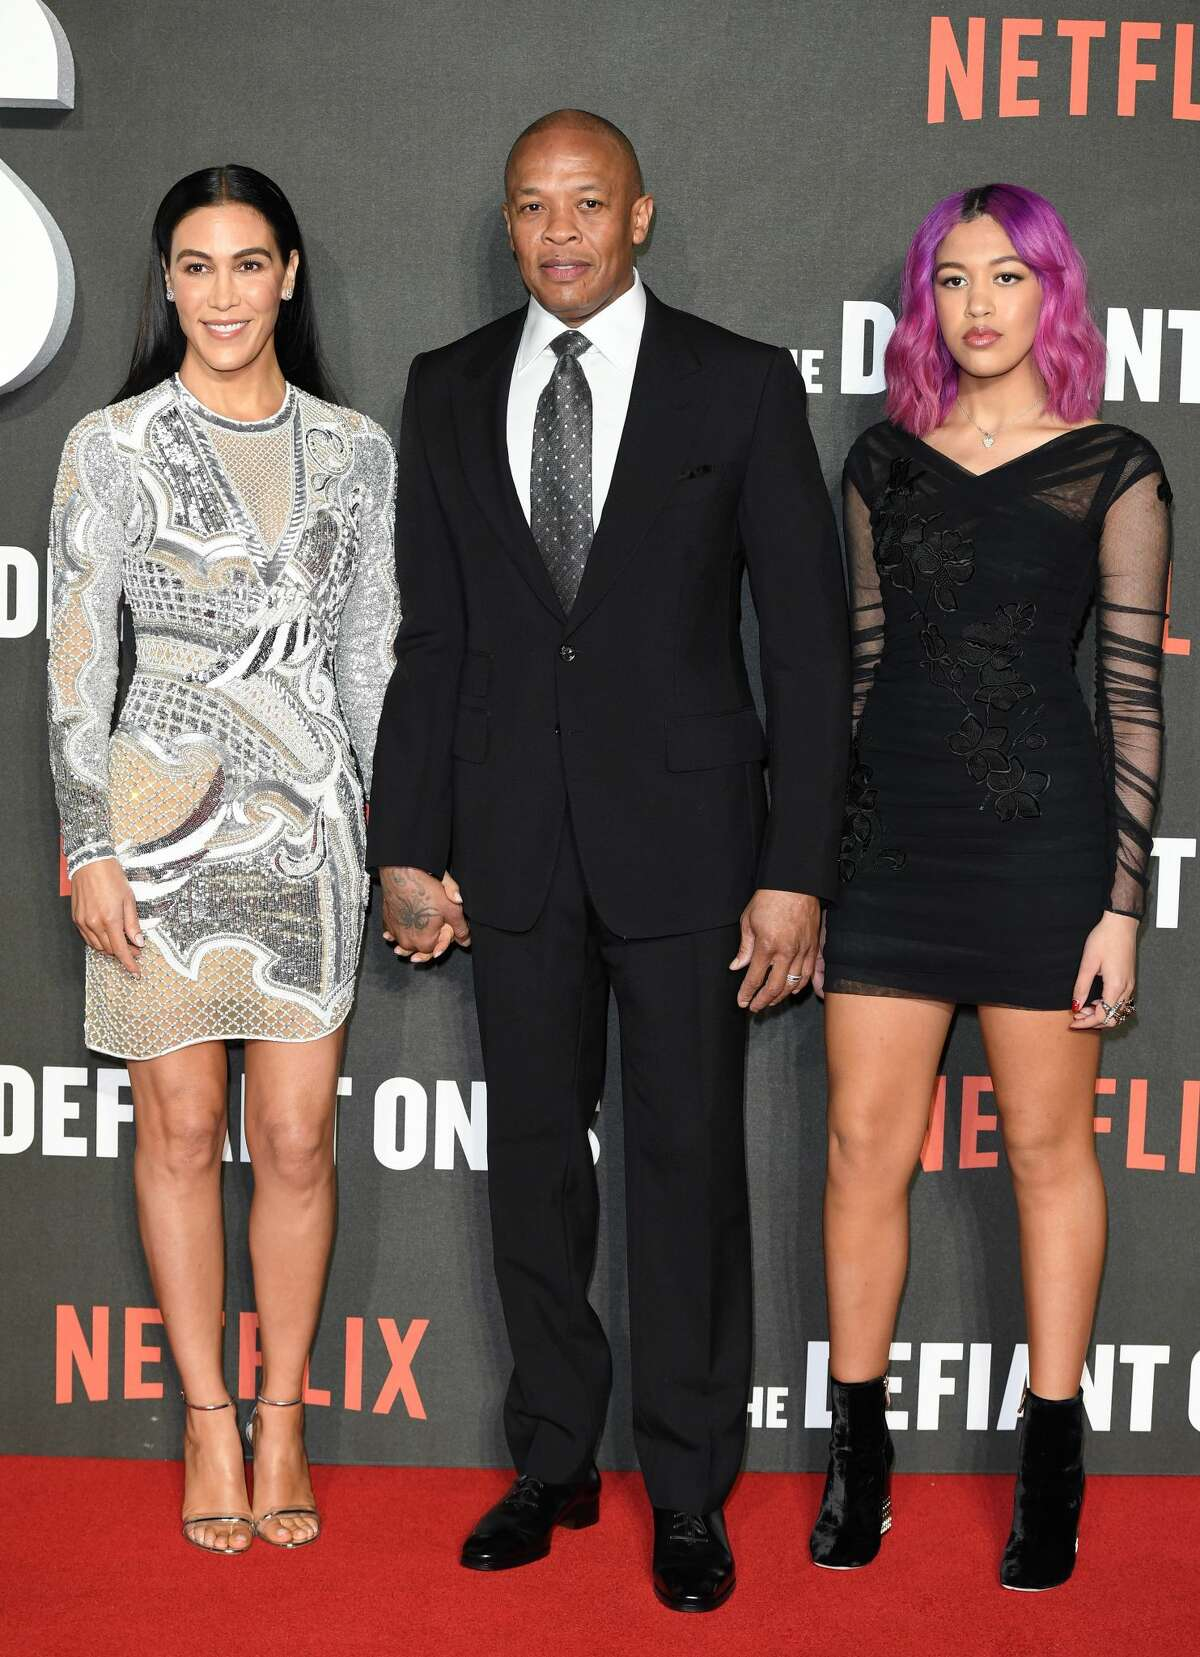 FILE - Dr. Dre, wife Nicole Young (L) and daughter Truly Young (R) attend 'The Defiant Ones' special screening at the Ritzy Picturehouse in this file photo from March 15, 2018 in London. In the aftermath of a college admission scandal involving University of Southern California, people on social media were angry that he bragged about his daughter's admission into the school, reminding him that he donated $70 million to the school along with Jimmy Iovine in 2013. Click through to learn more about the nationwide college admissions scandal. >>>